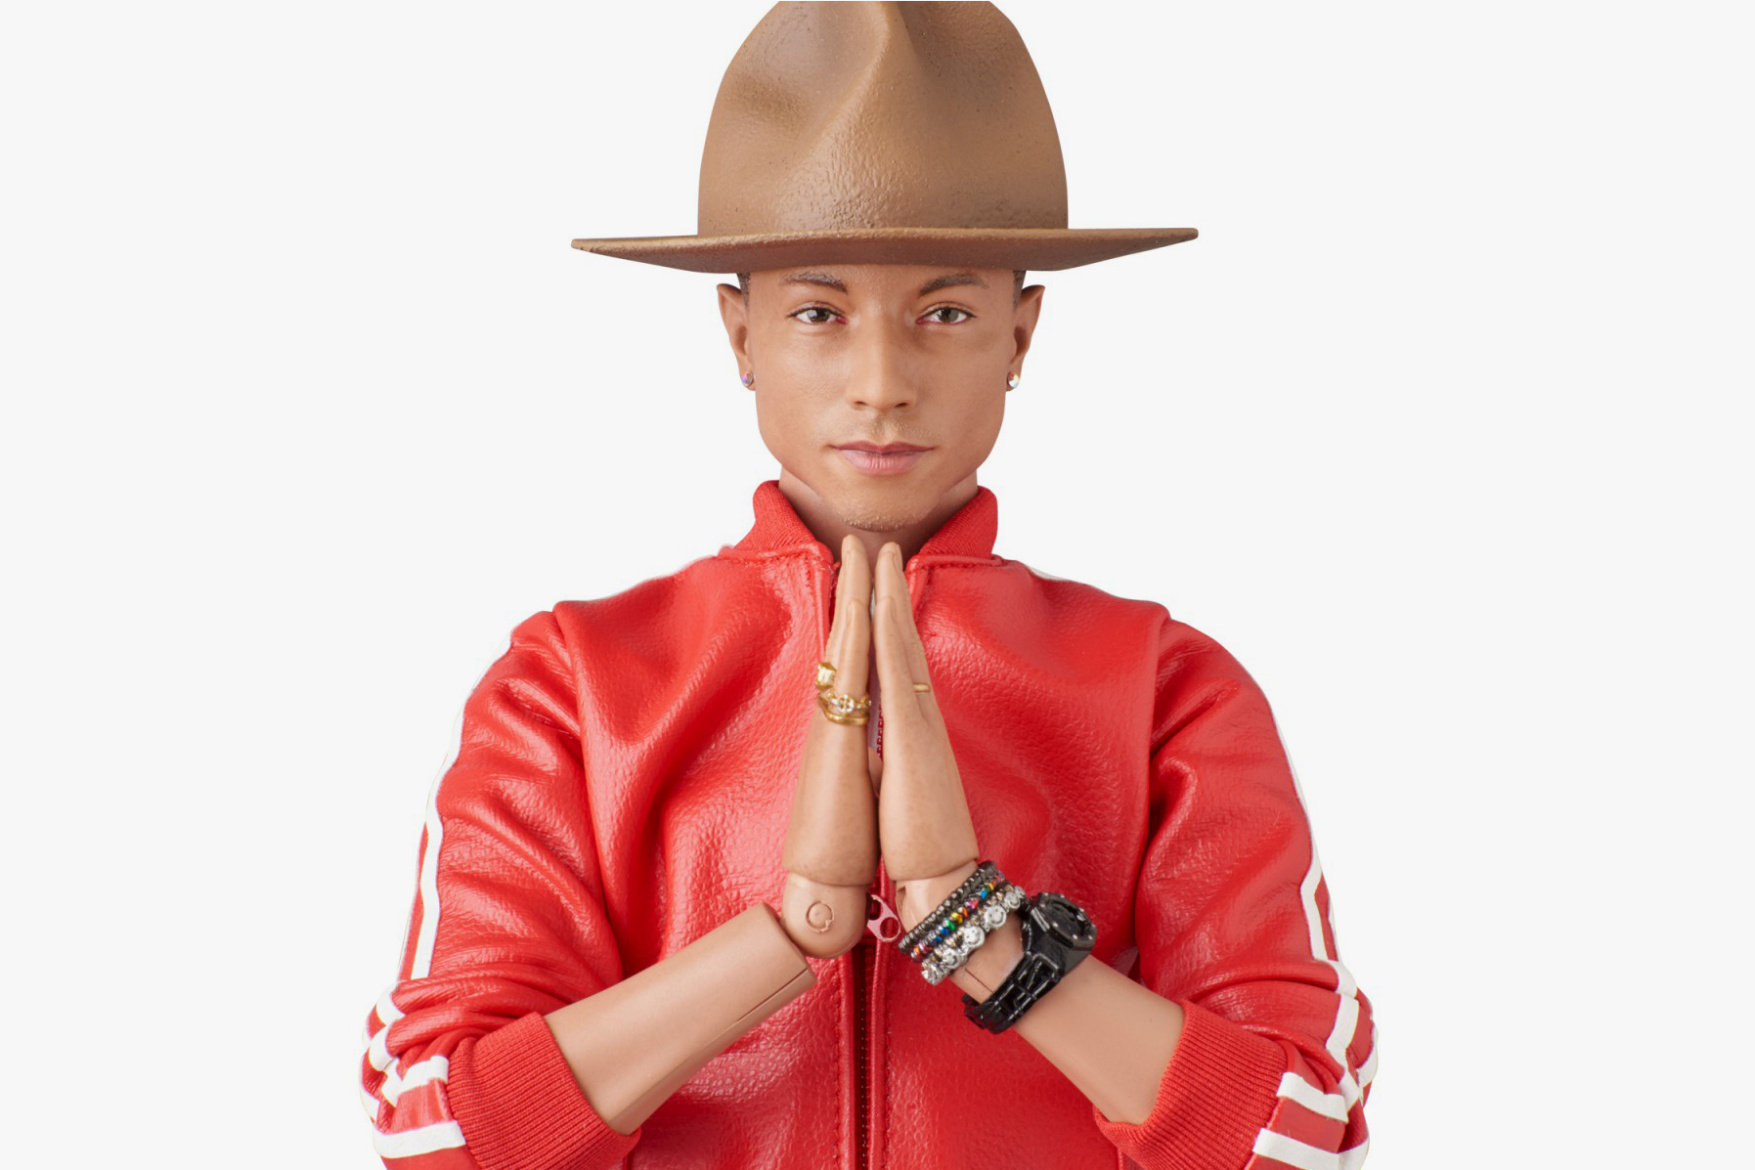 pharrell-medicom-toy-figure 4